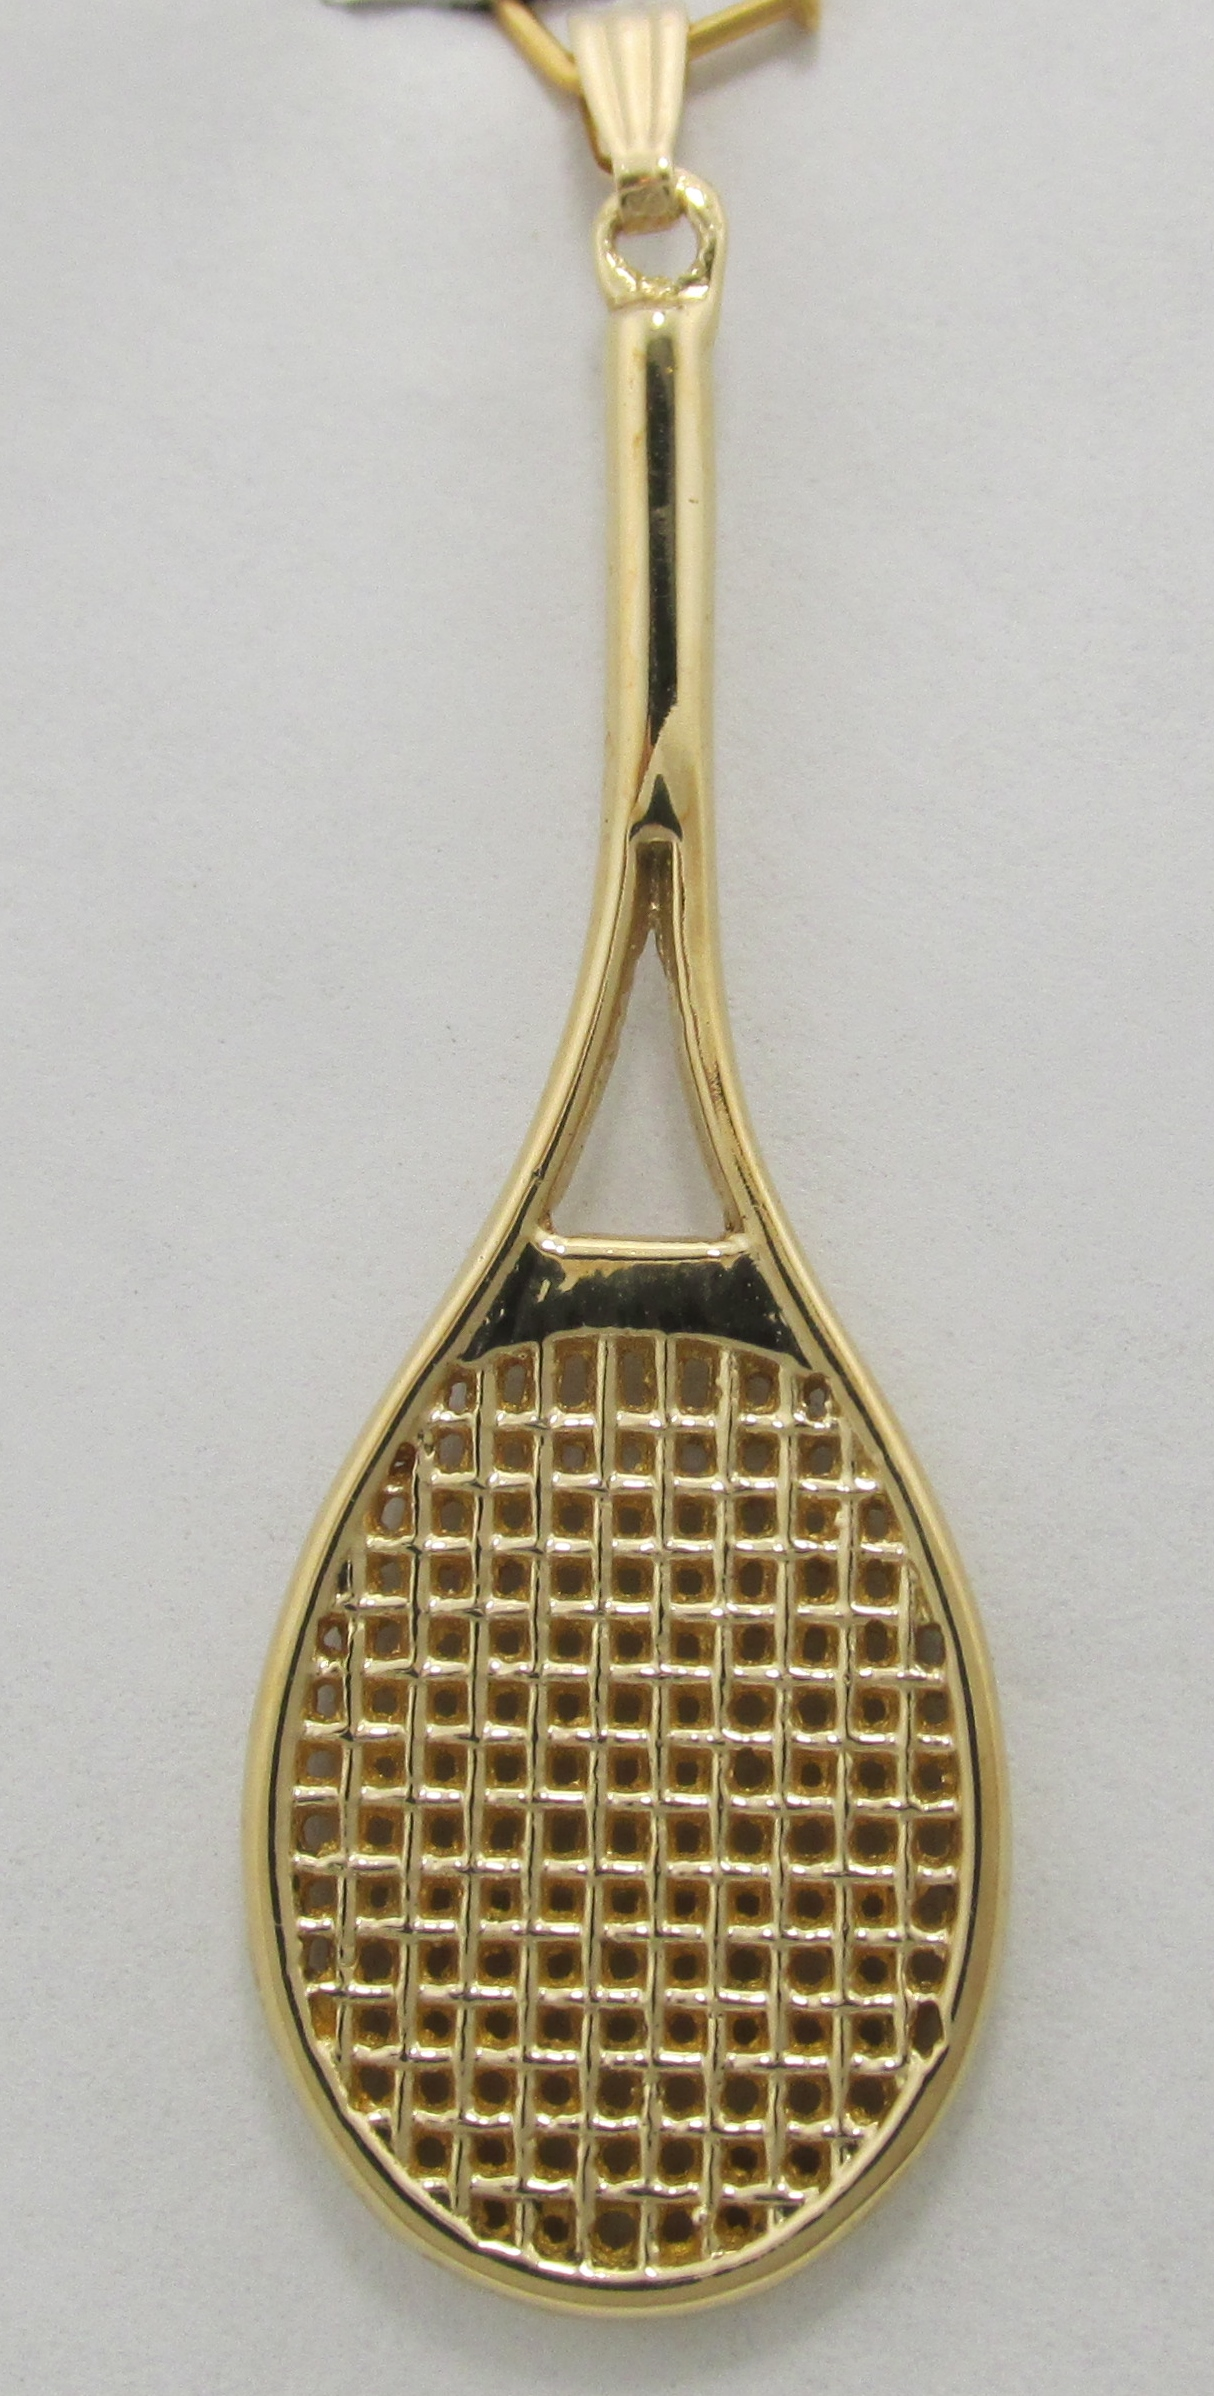 14k solid yellow gold tennis racquet pendant 392 grams gold tennis racquet mozeypictures Gallery